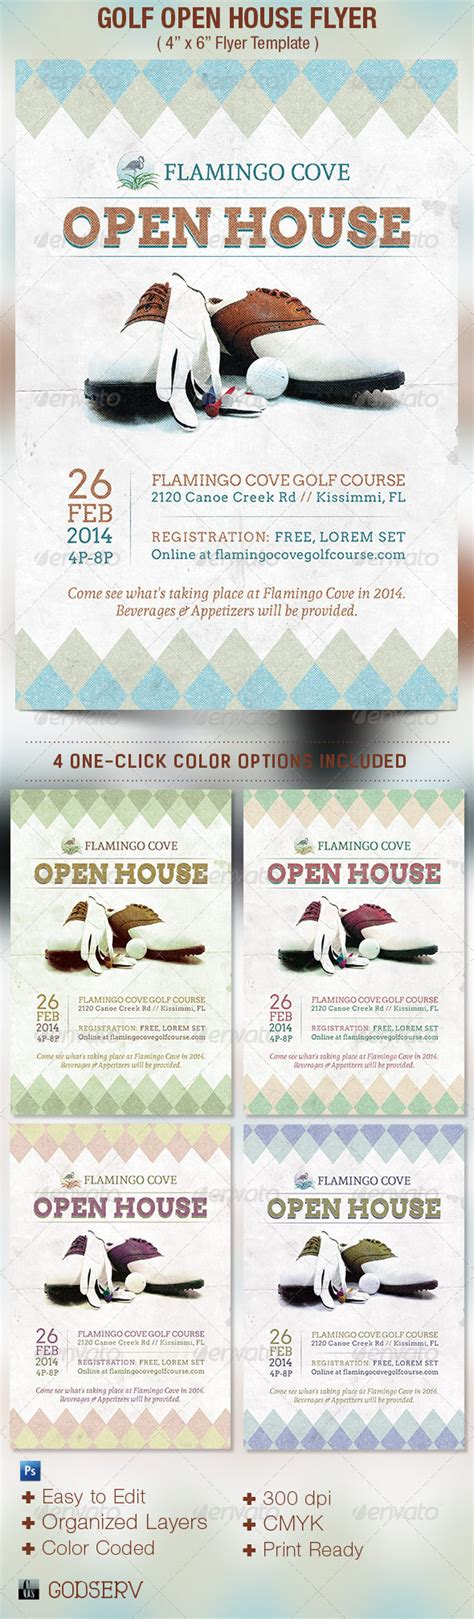 themes for open house events golf open house flyer template on behance